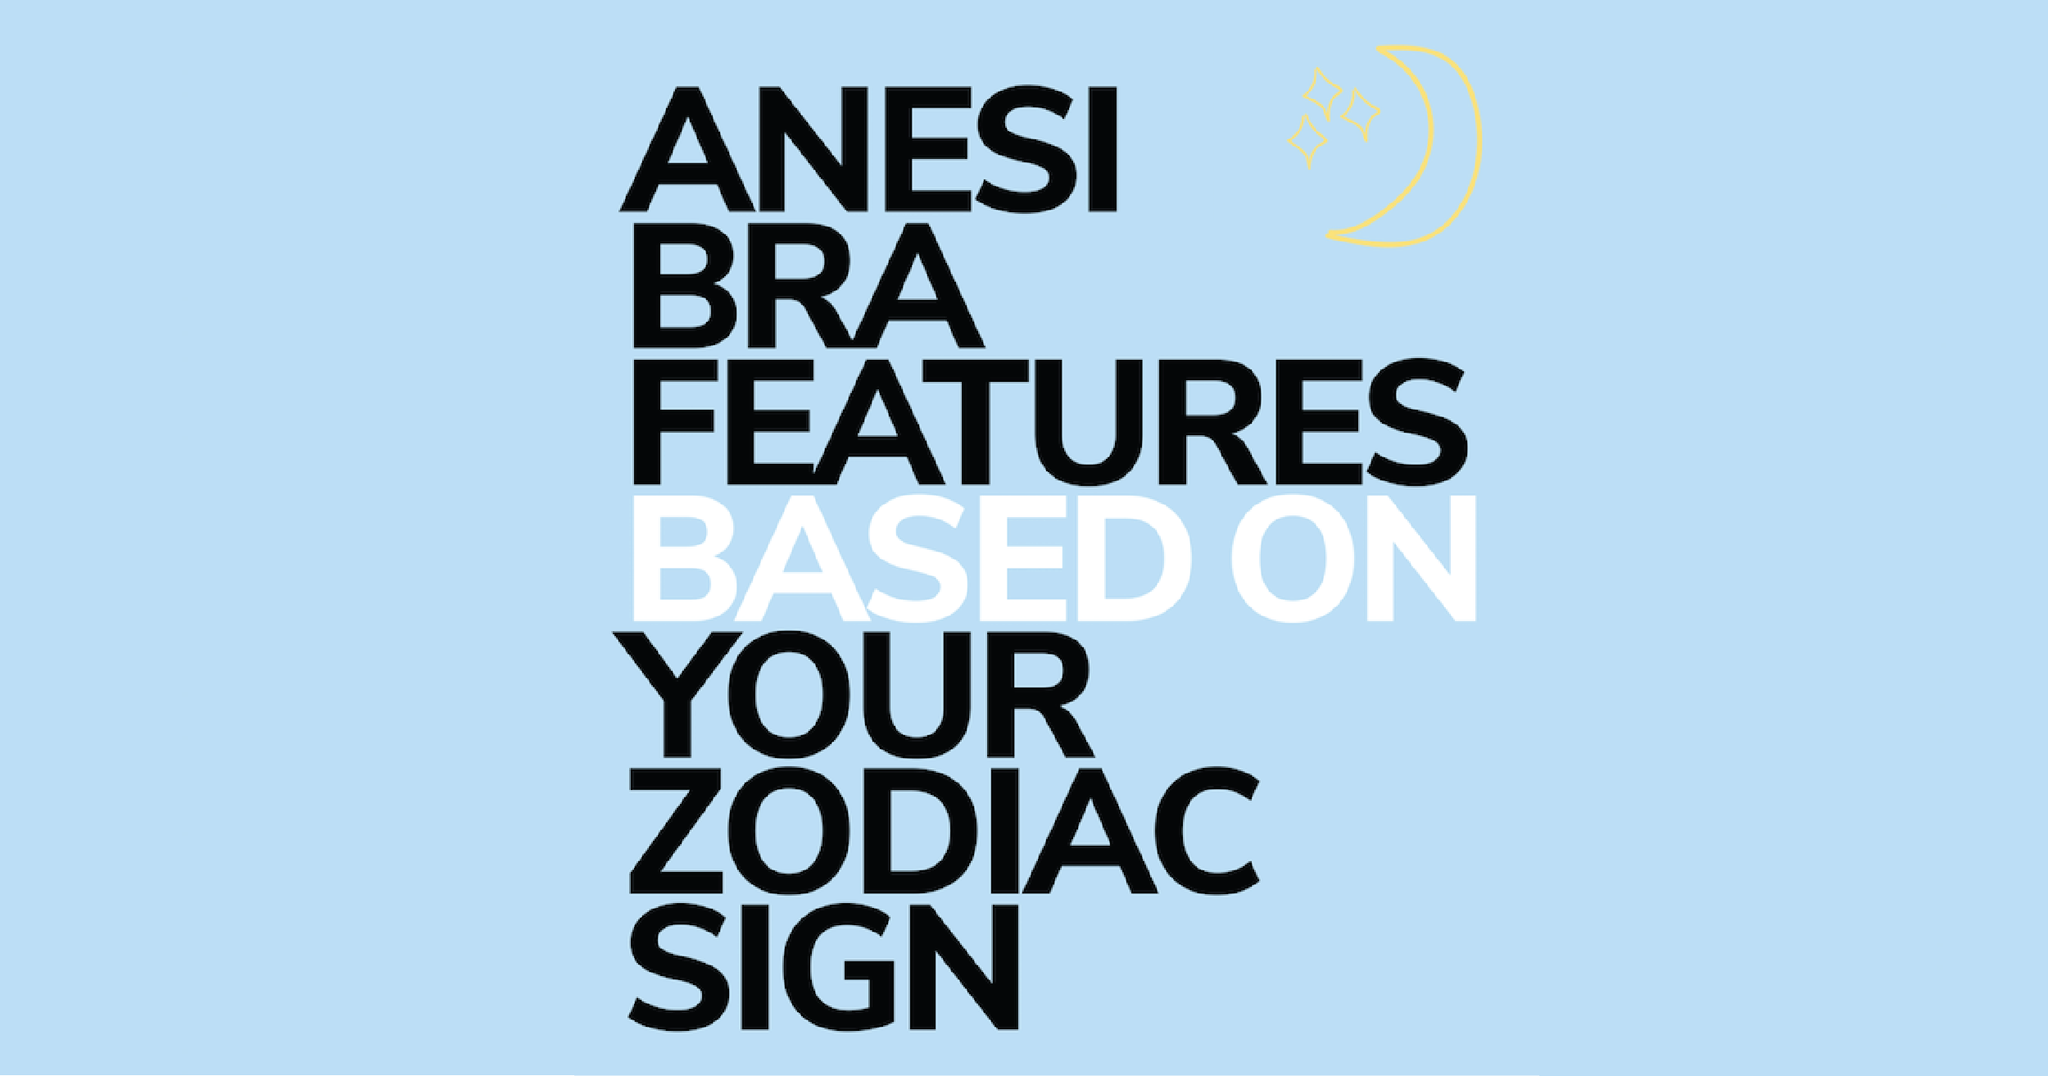 Anesi bra features based on your zodiac sign